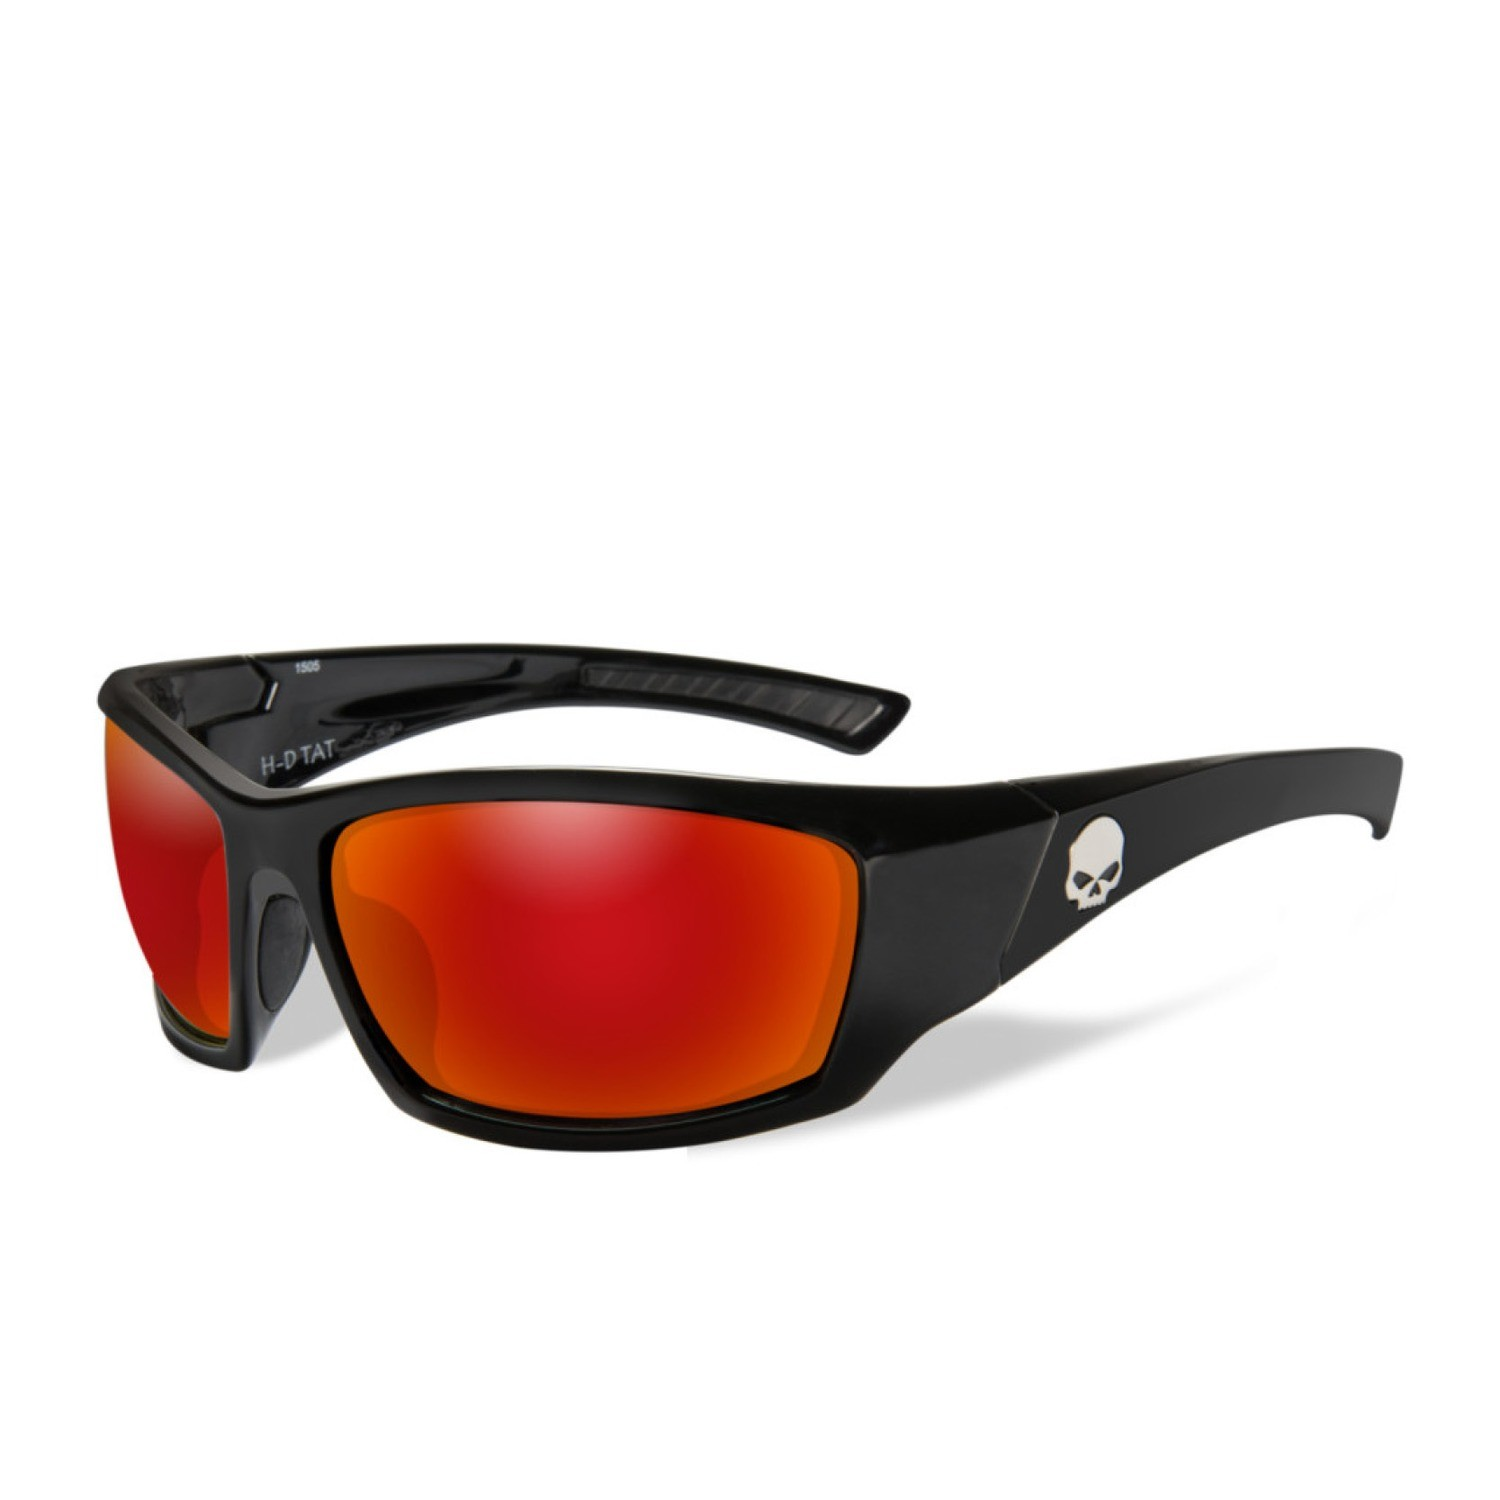 Wiley X HD Tat Red Lenses / Gloss Black Frame Biker Glasses